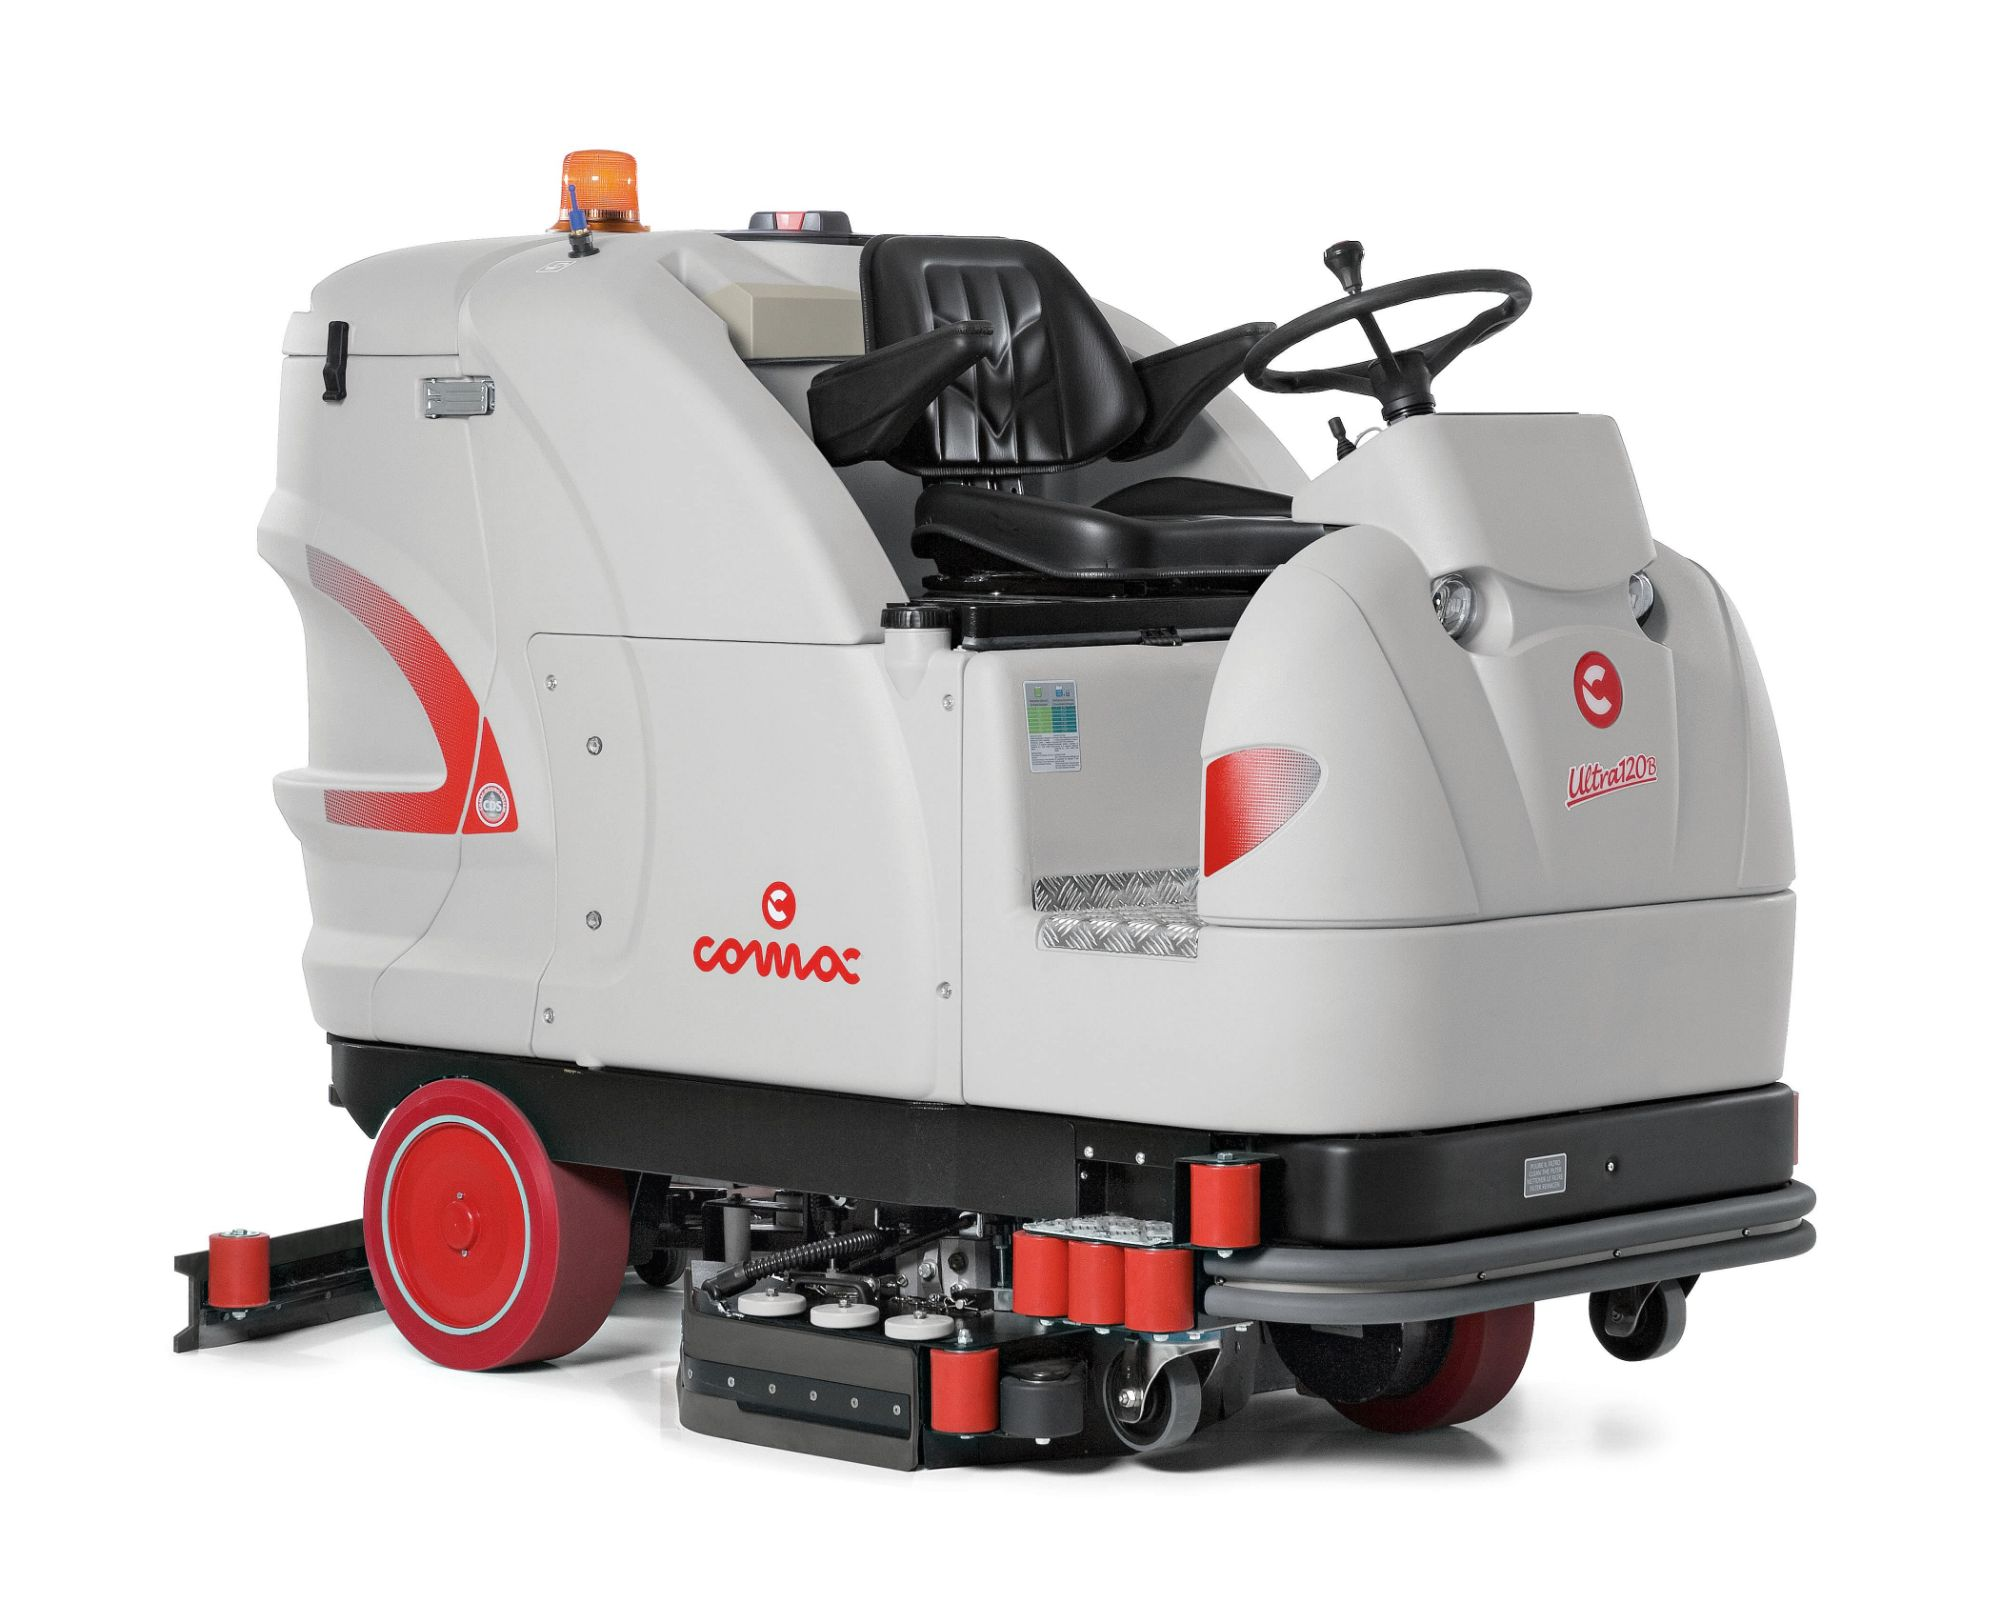 Comac Ultra 120B Scrubber Dryer